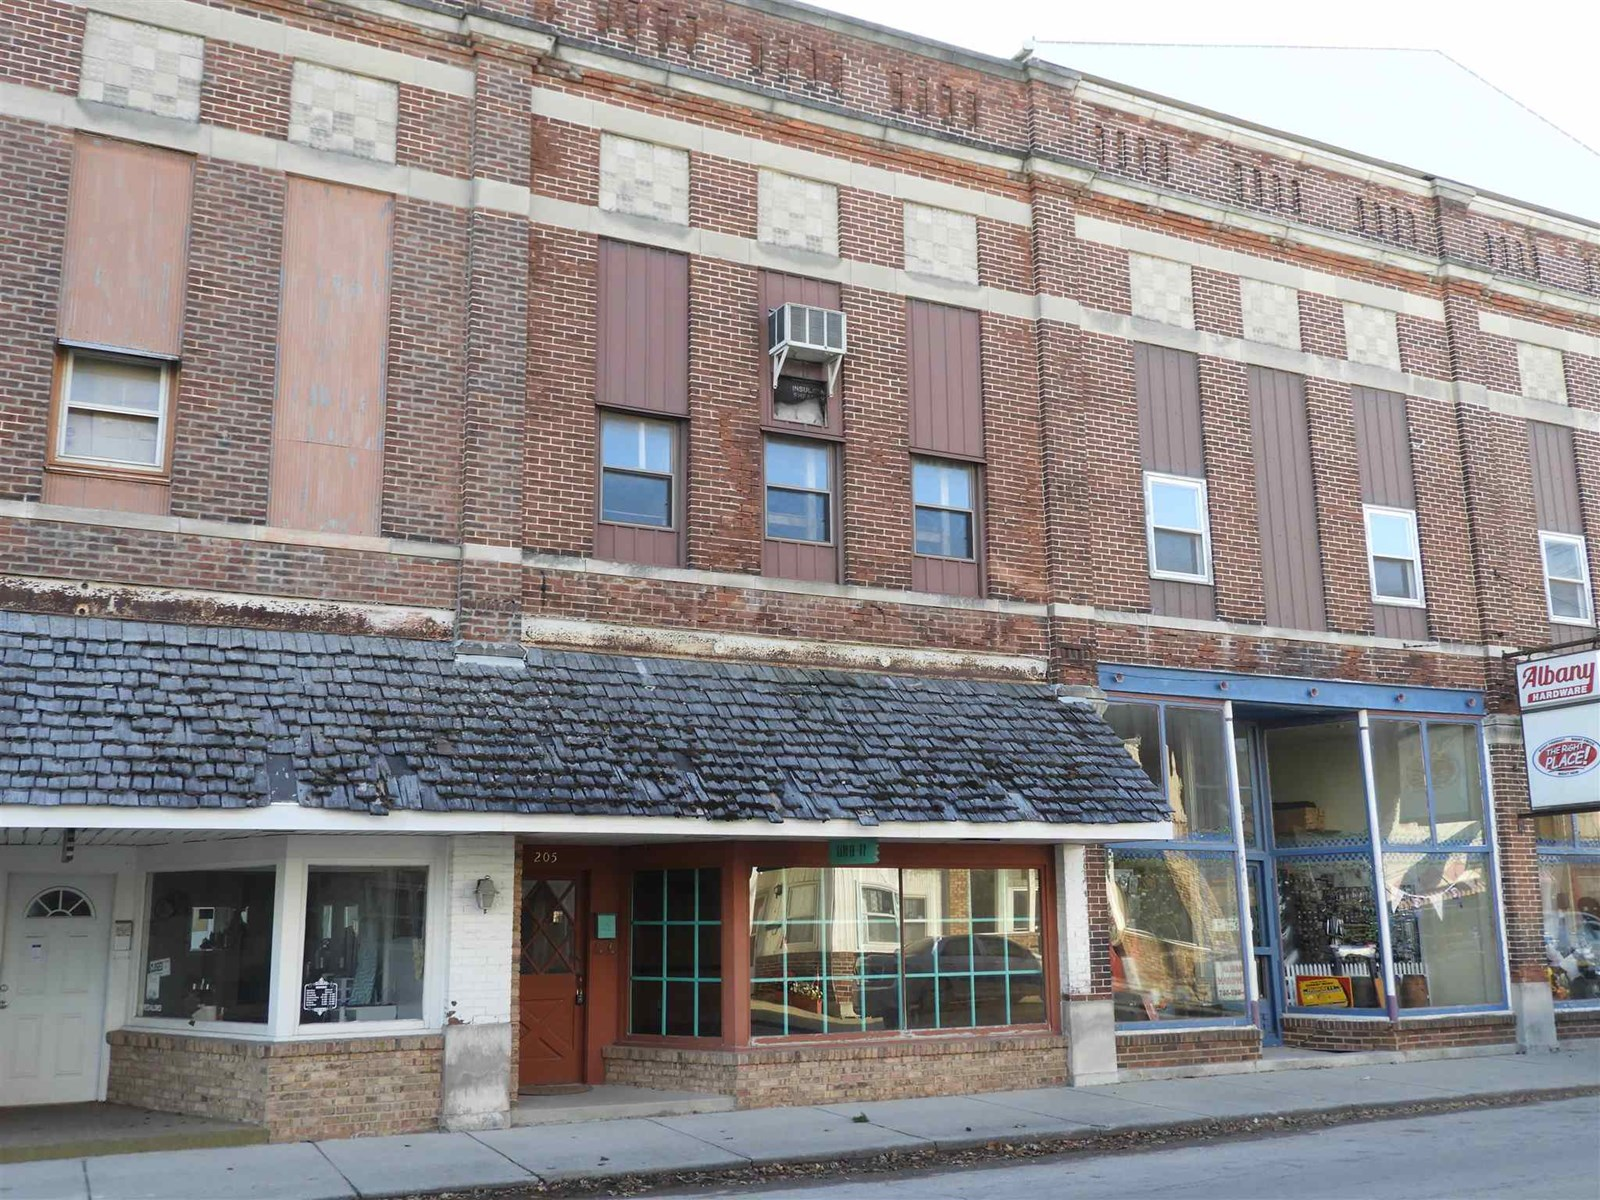 Commercial Building for Sale Albany, Indiana